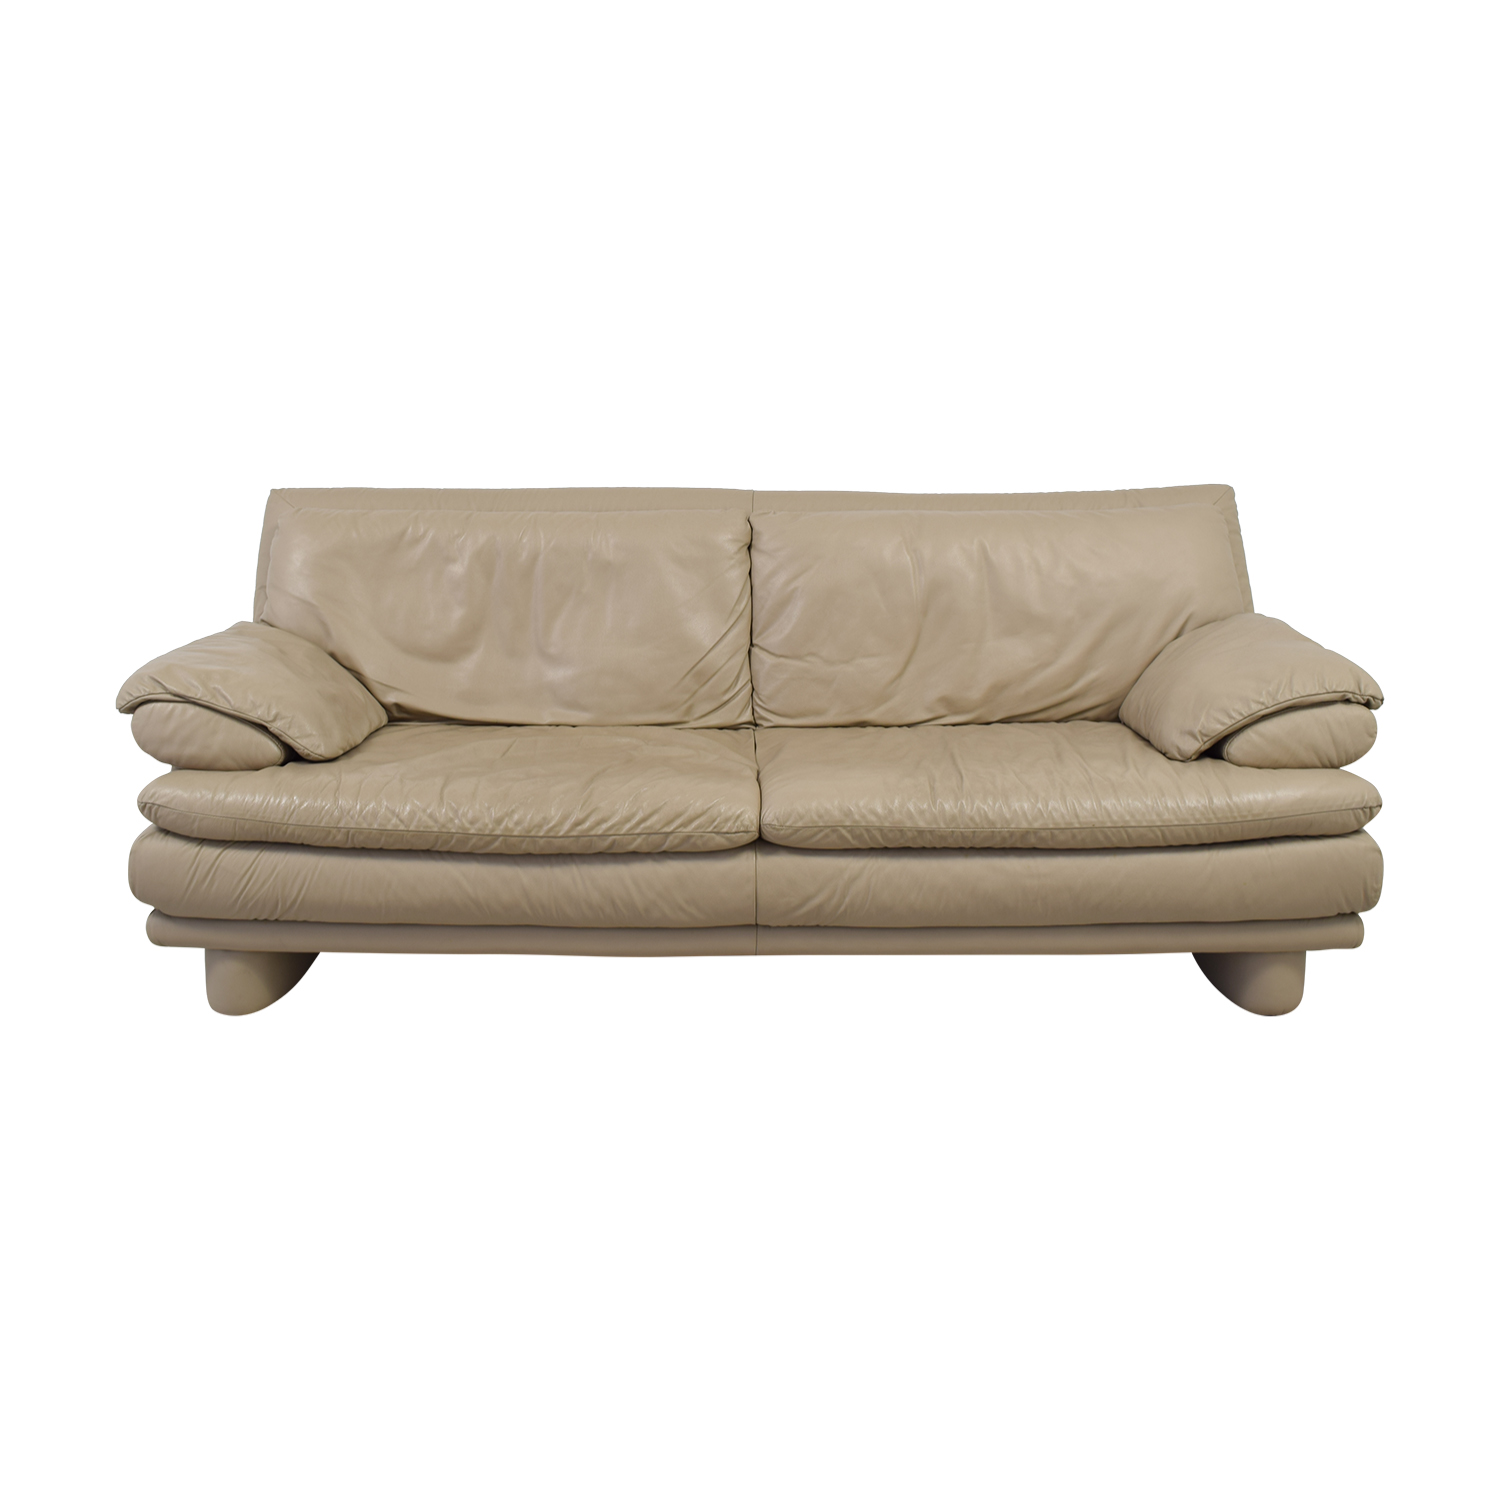 Maurice Villency Maurice Villency Two-Cushion Tan Leather Couch dimensions